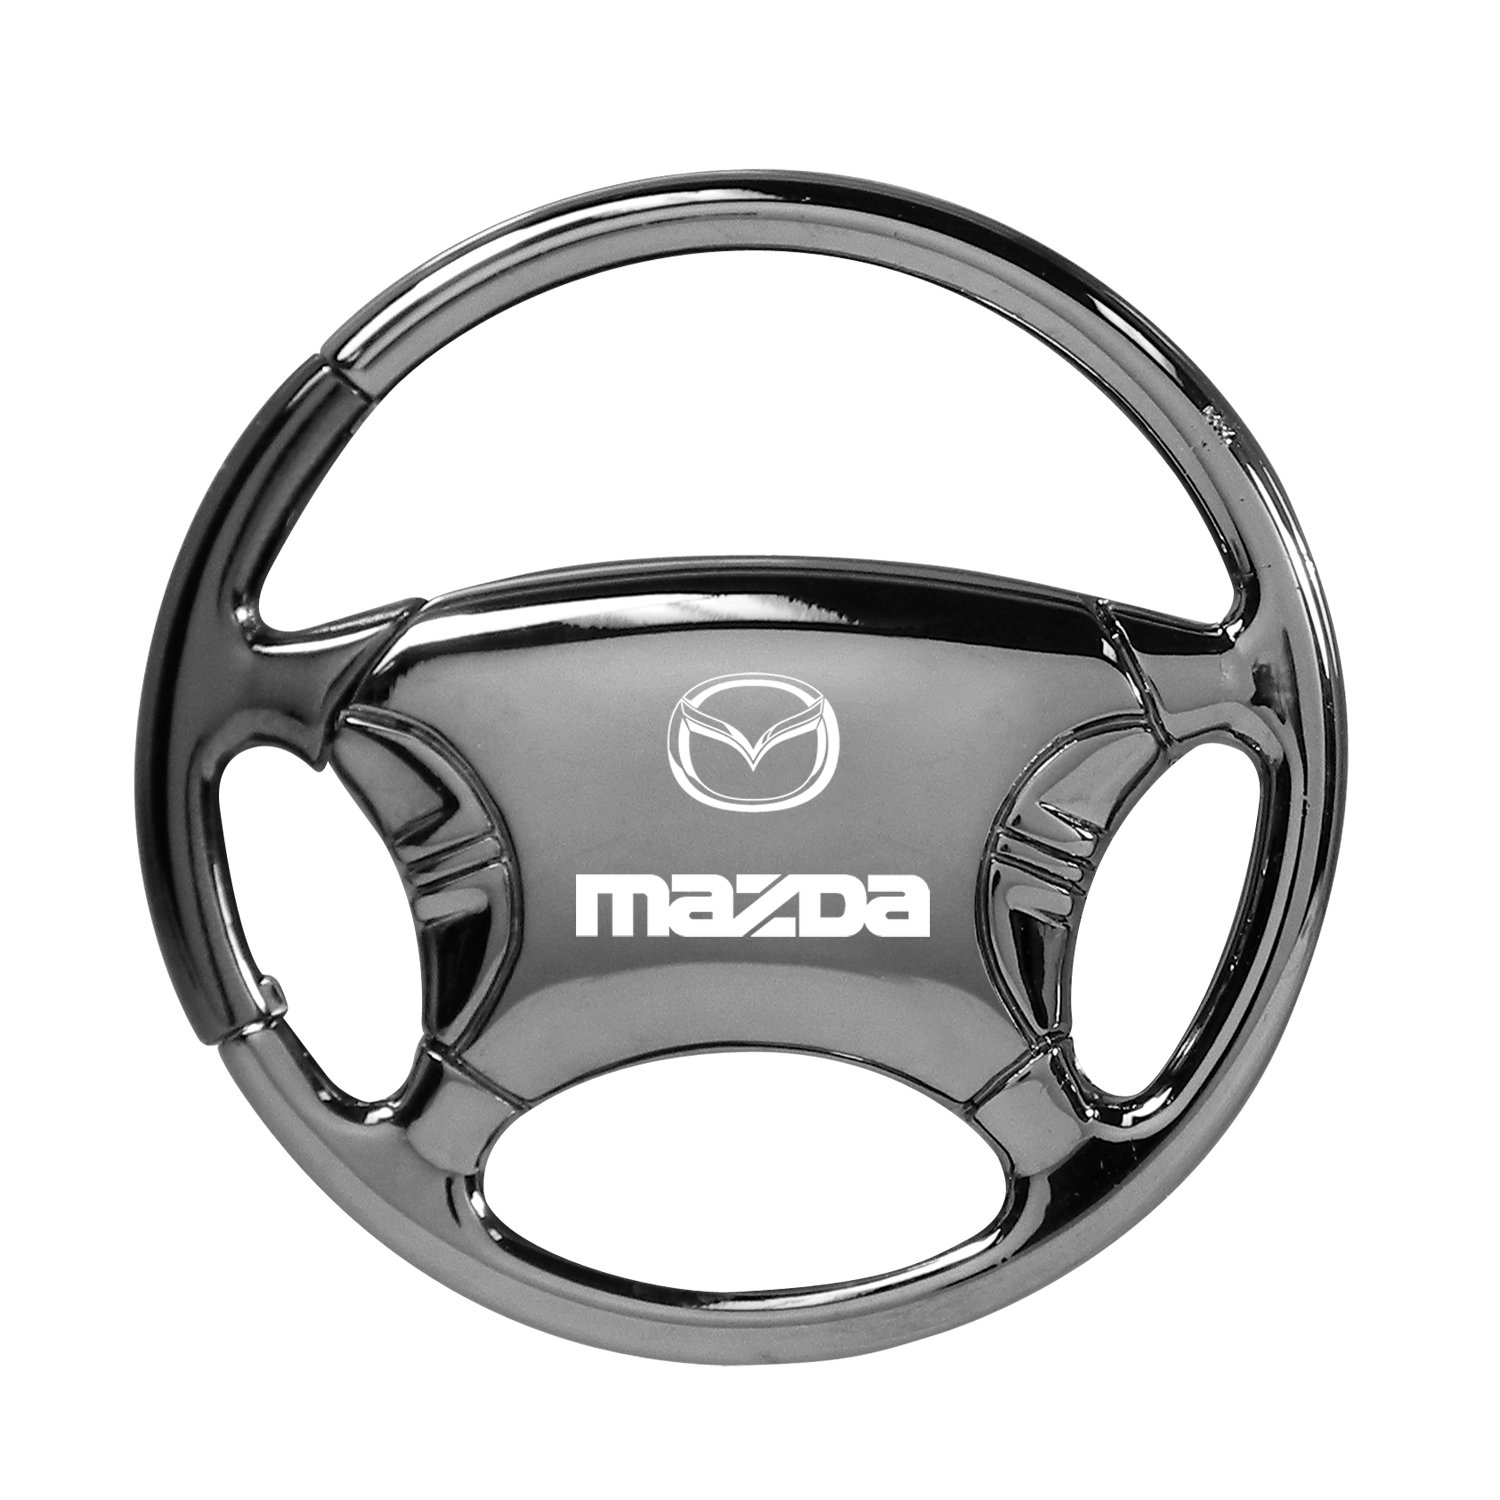 Mazda Black Chrome Steering Wheel Key Chain Au-Tomotive Gold INC 5559031915